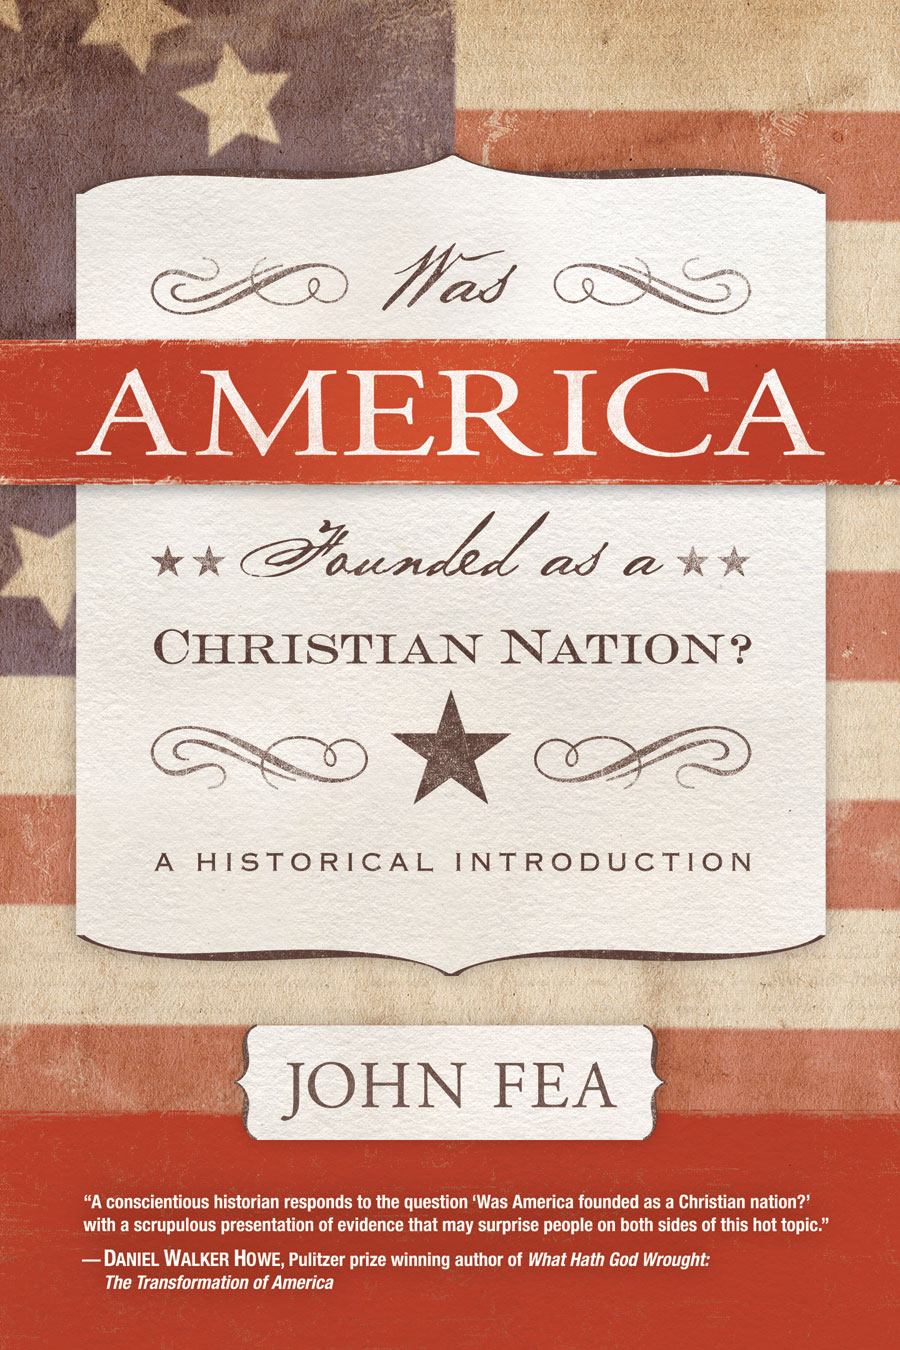 Was America Founded as a Christian Nation? A Historical Introduction by John Fea